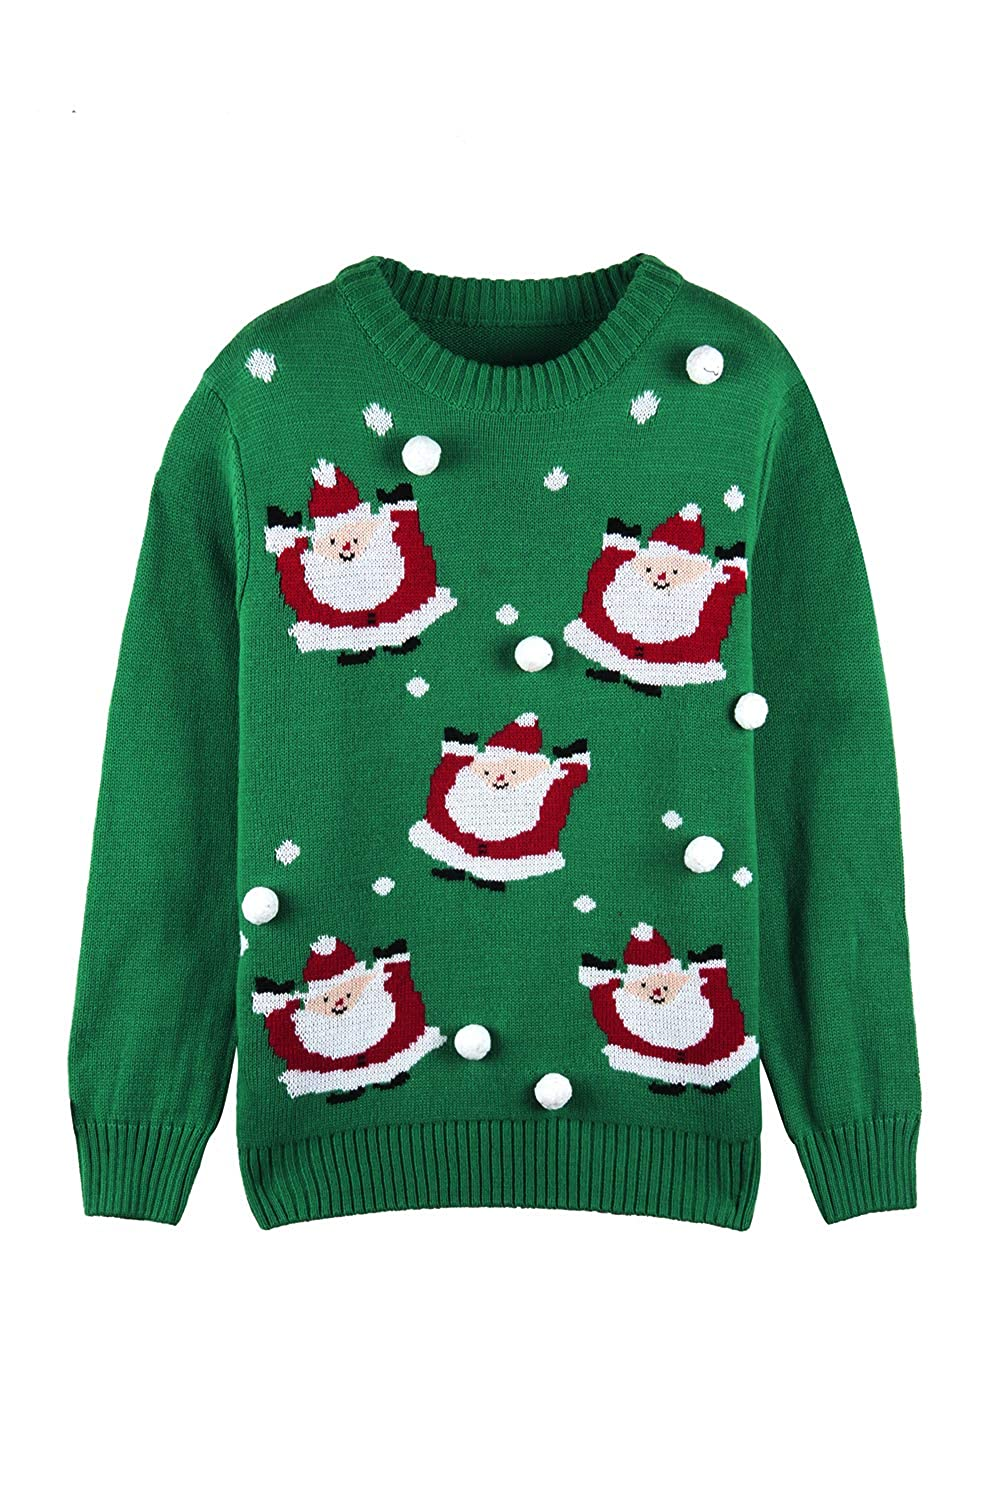 Sovoyontee Women Long Sleeve Knit Funny Cute Ugly Christmas Pullover Sweater